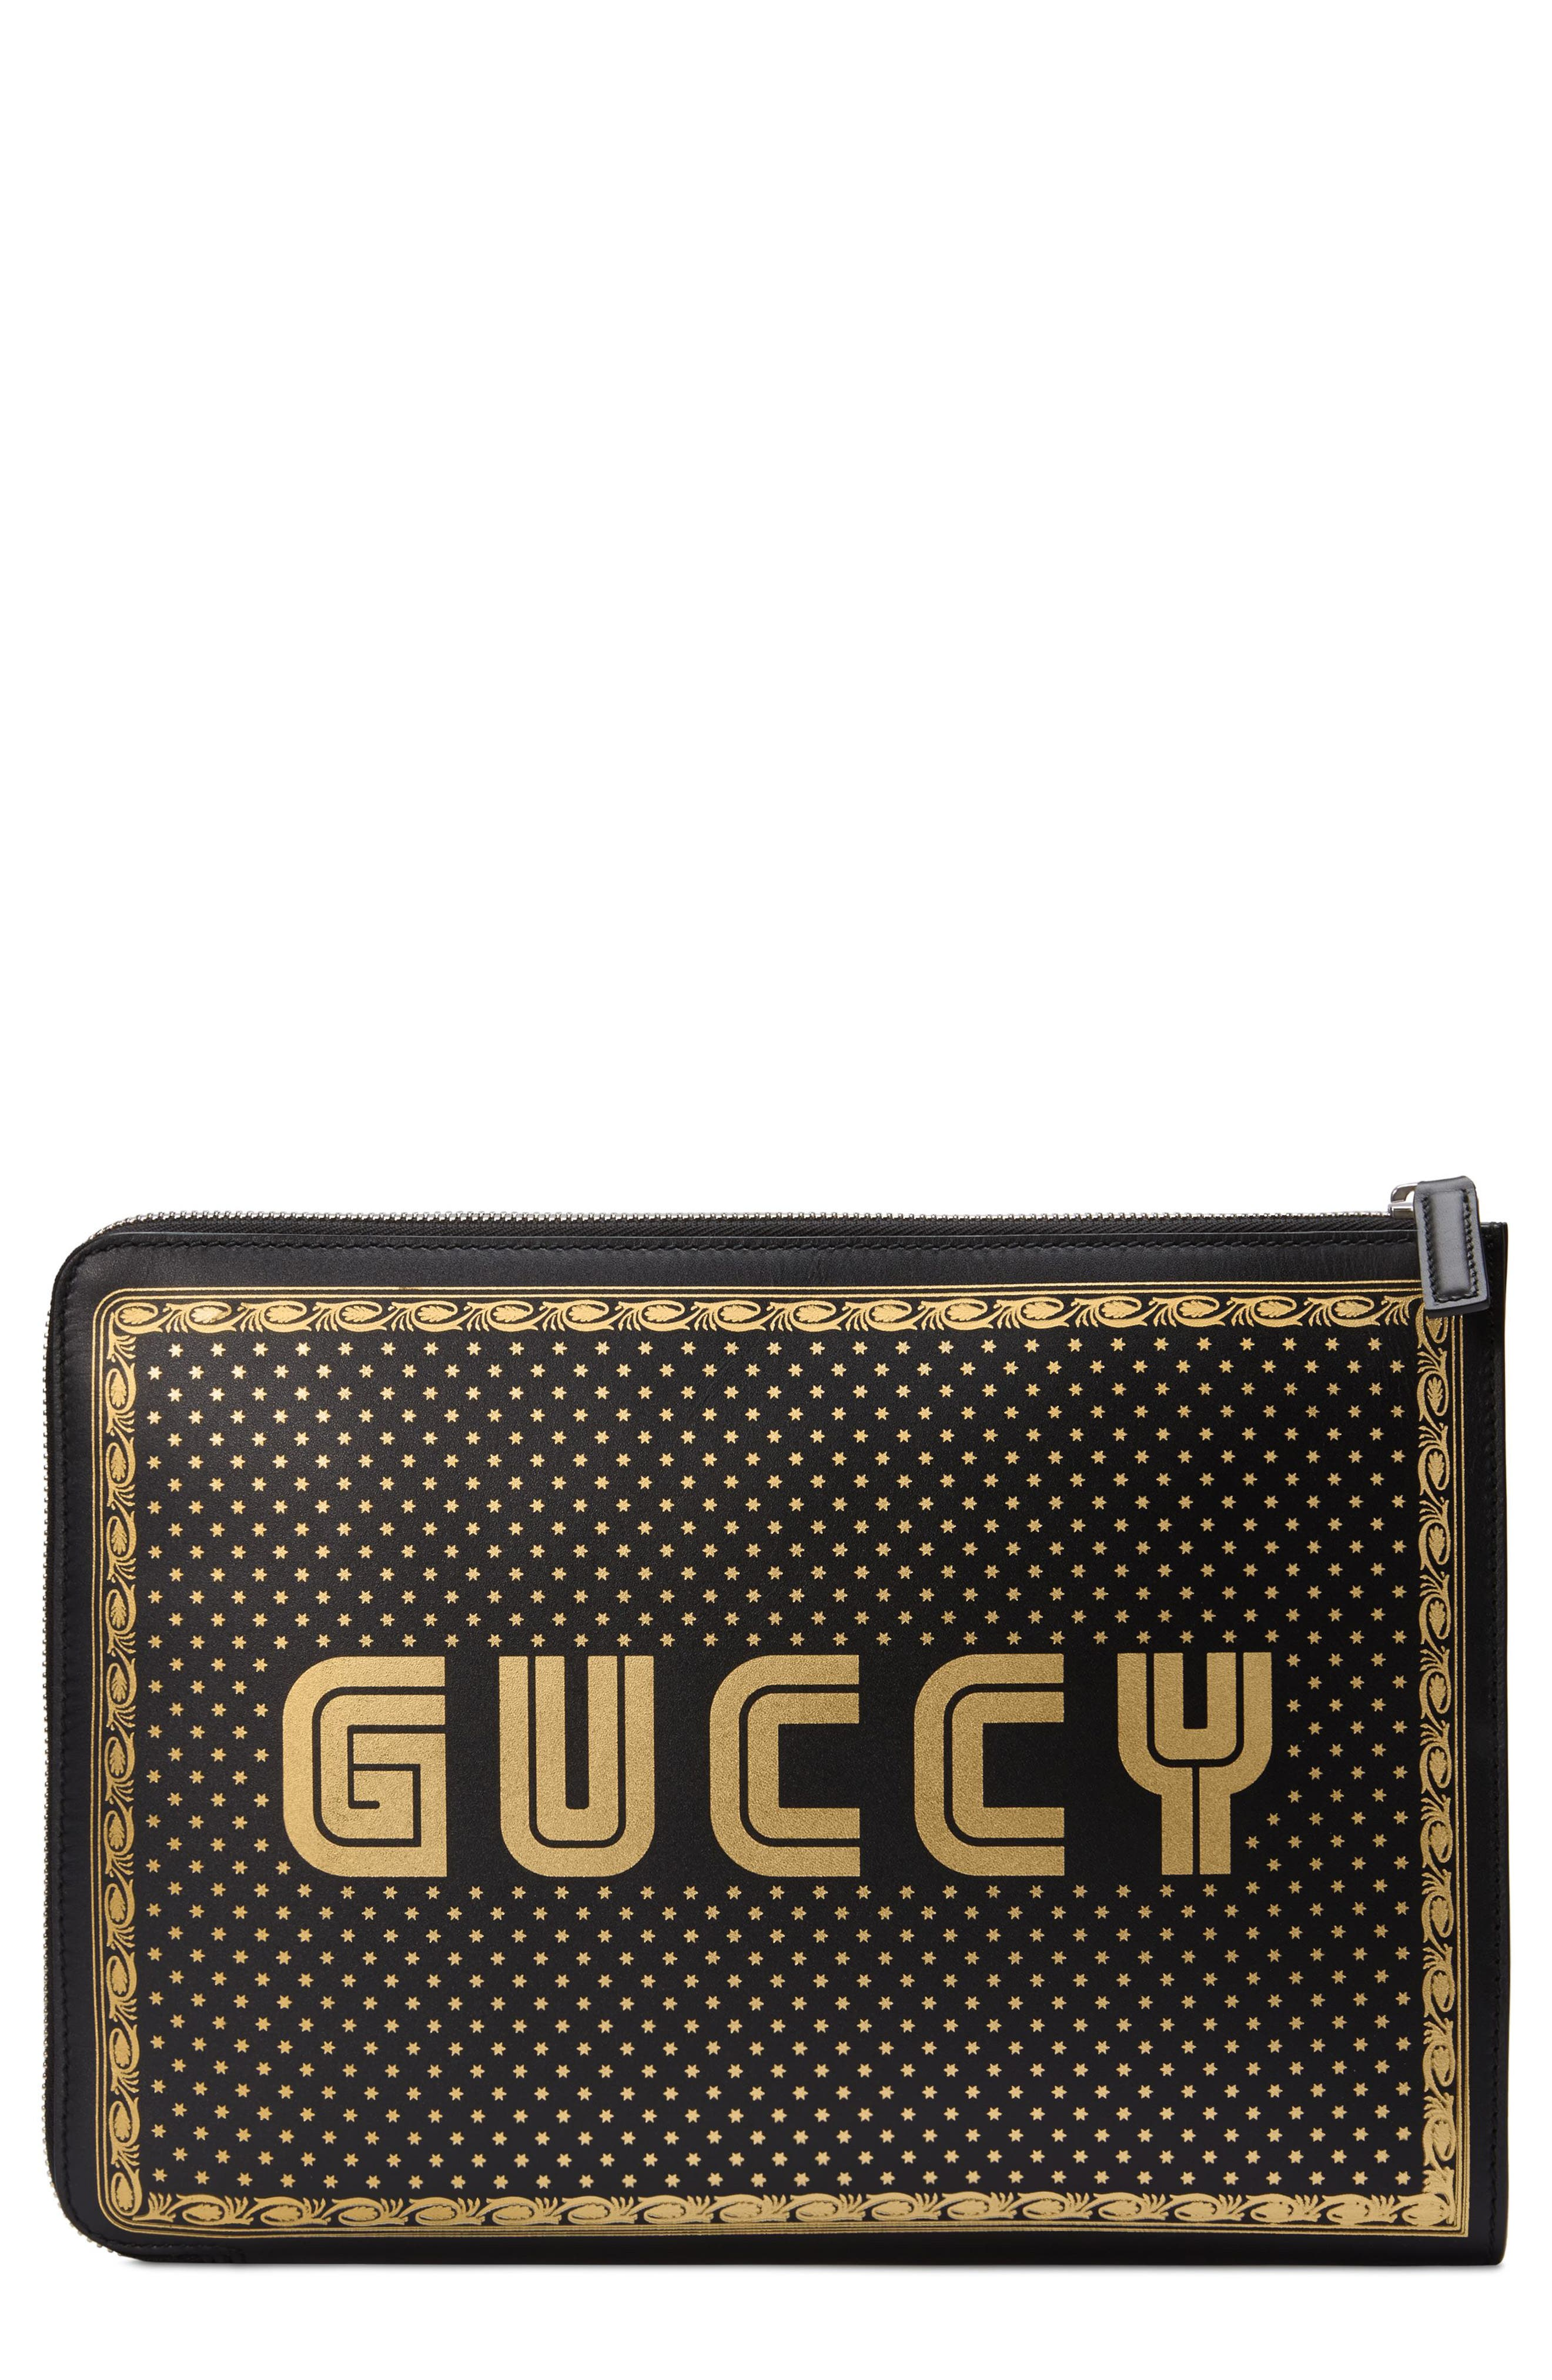 Guccy Logo Moon & Stars Leather Clutch,                             Main thumbnail 1, color,                             NERO ORO/ NERO